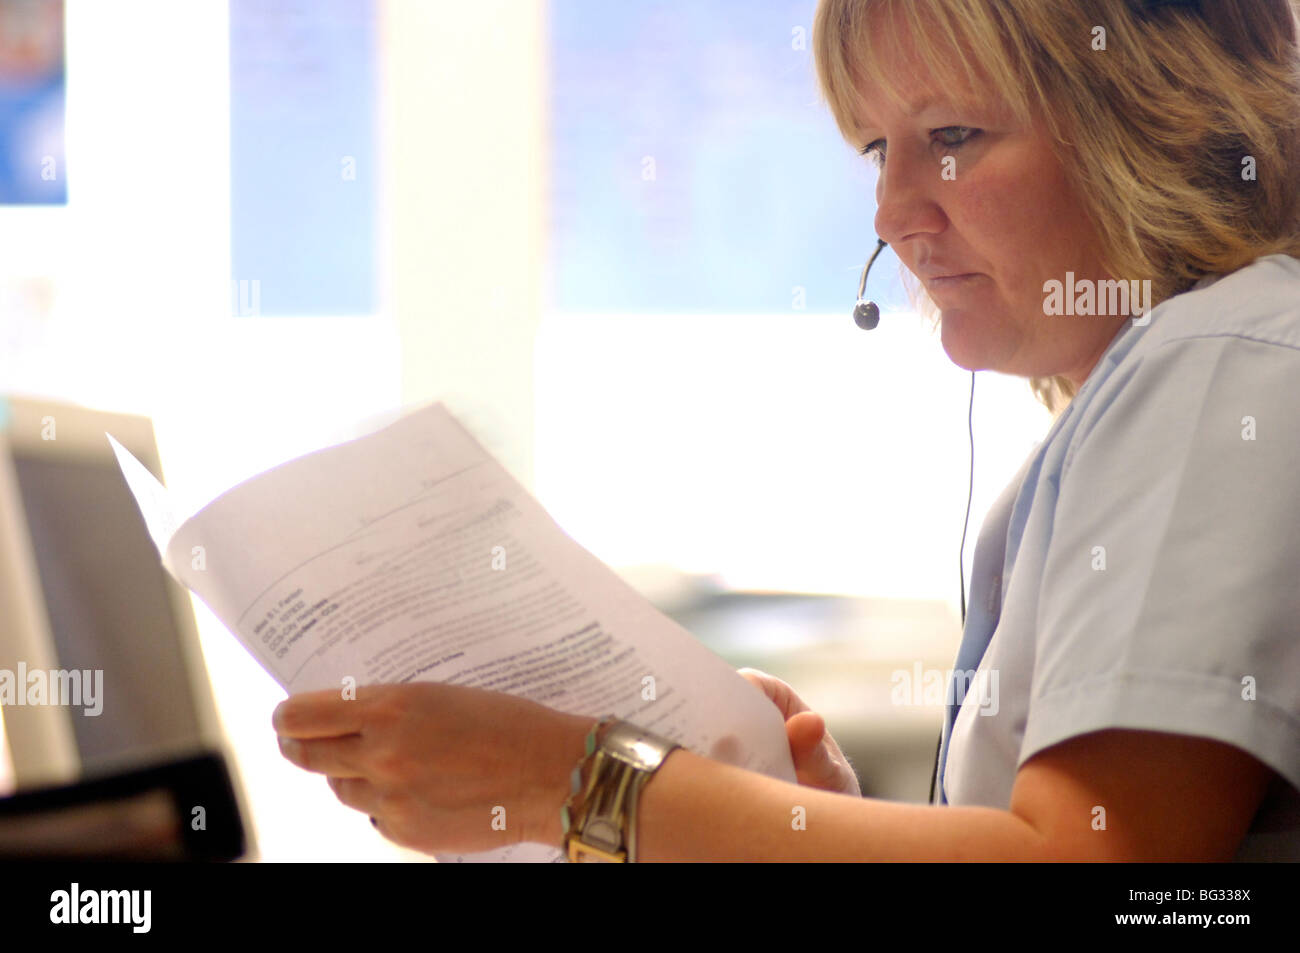 Royalty free photograph of customer support operator helping client on telephone in UK London offices. Stock Photo